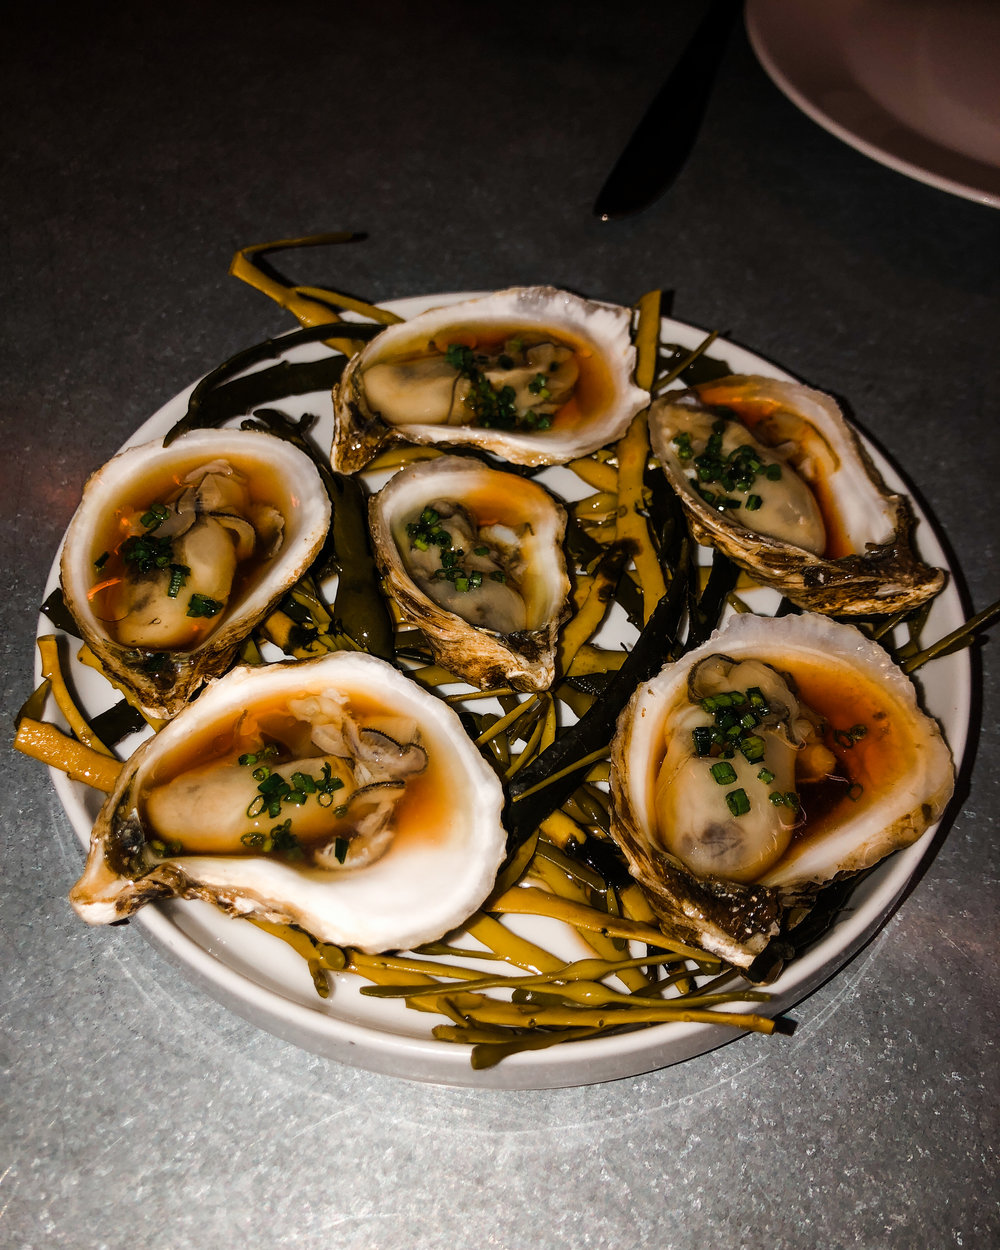 Oysters with lemon, ginger, and vinegar